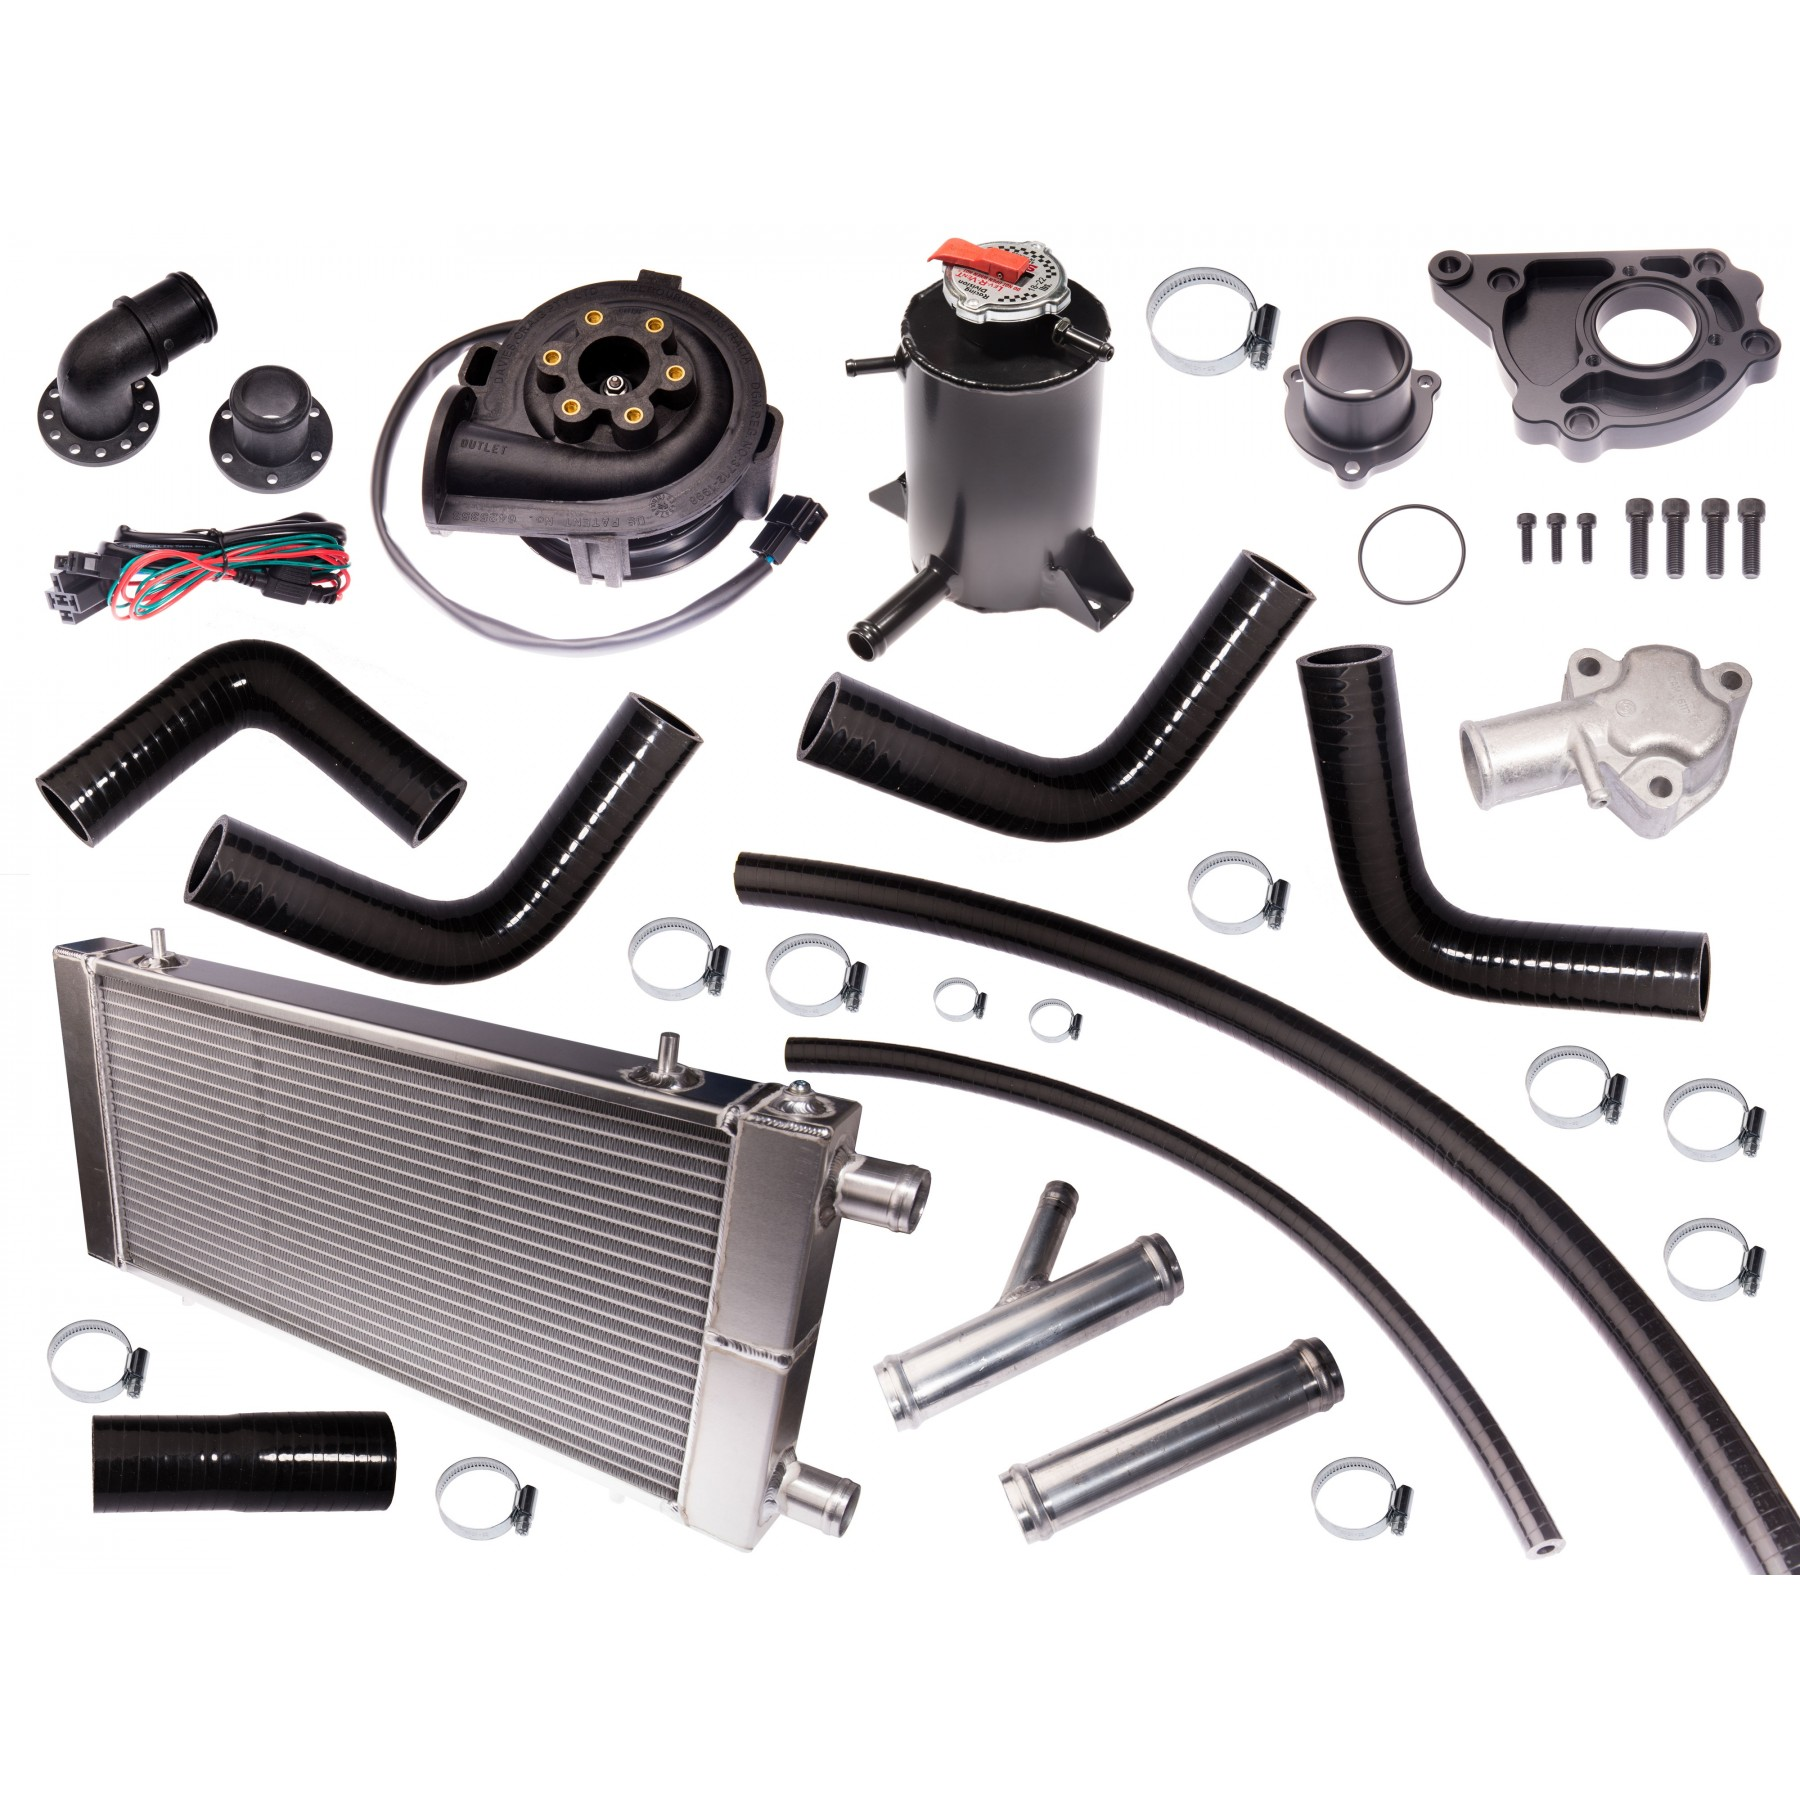 MED RACING ELECTRIC COOLANT KIT